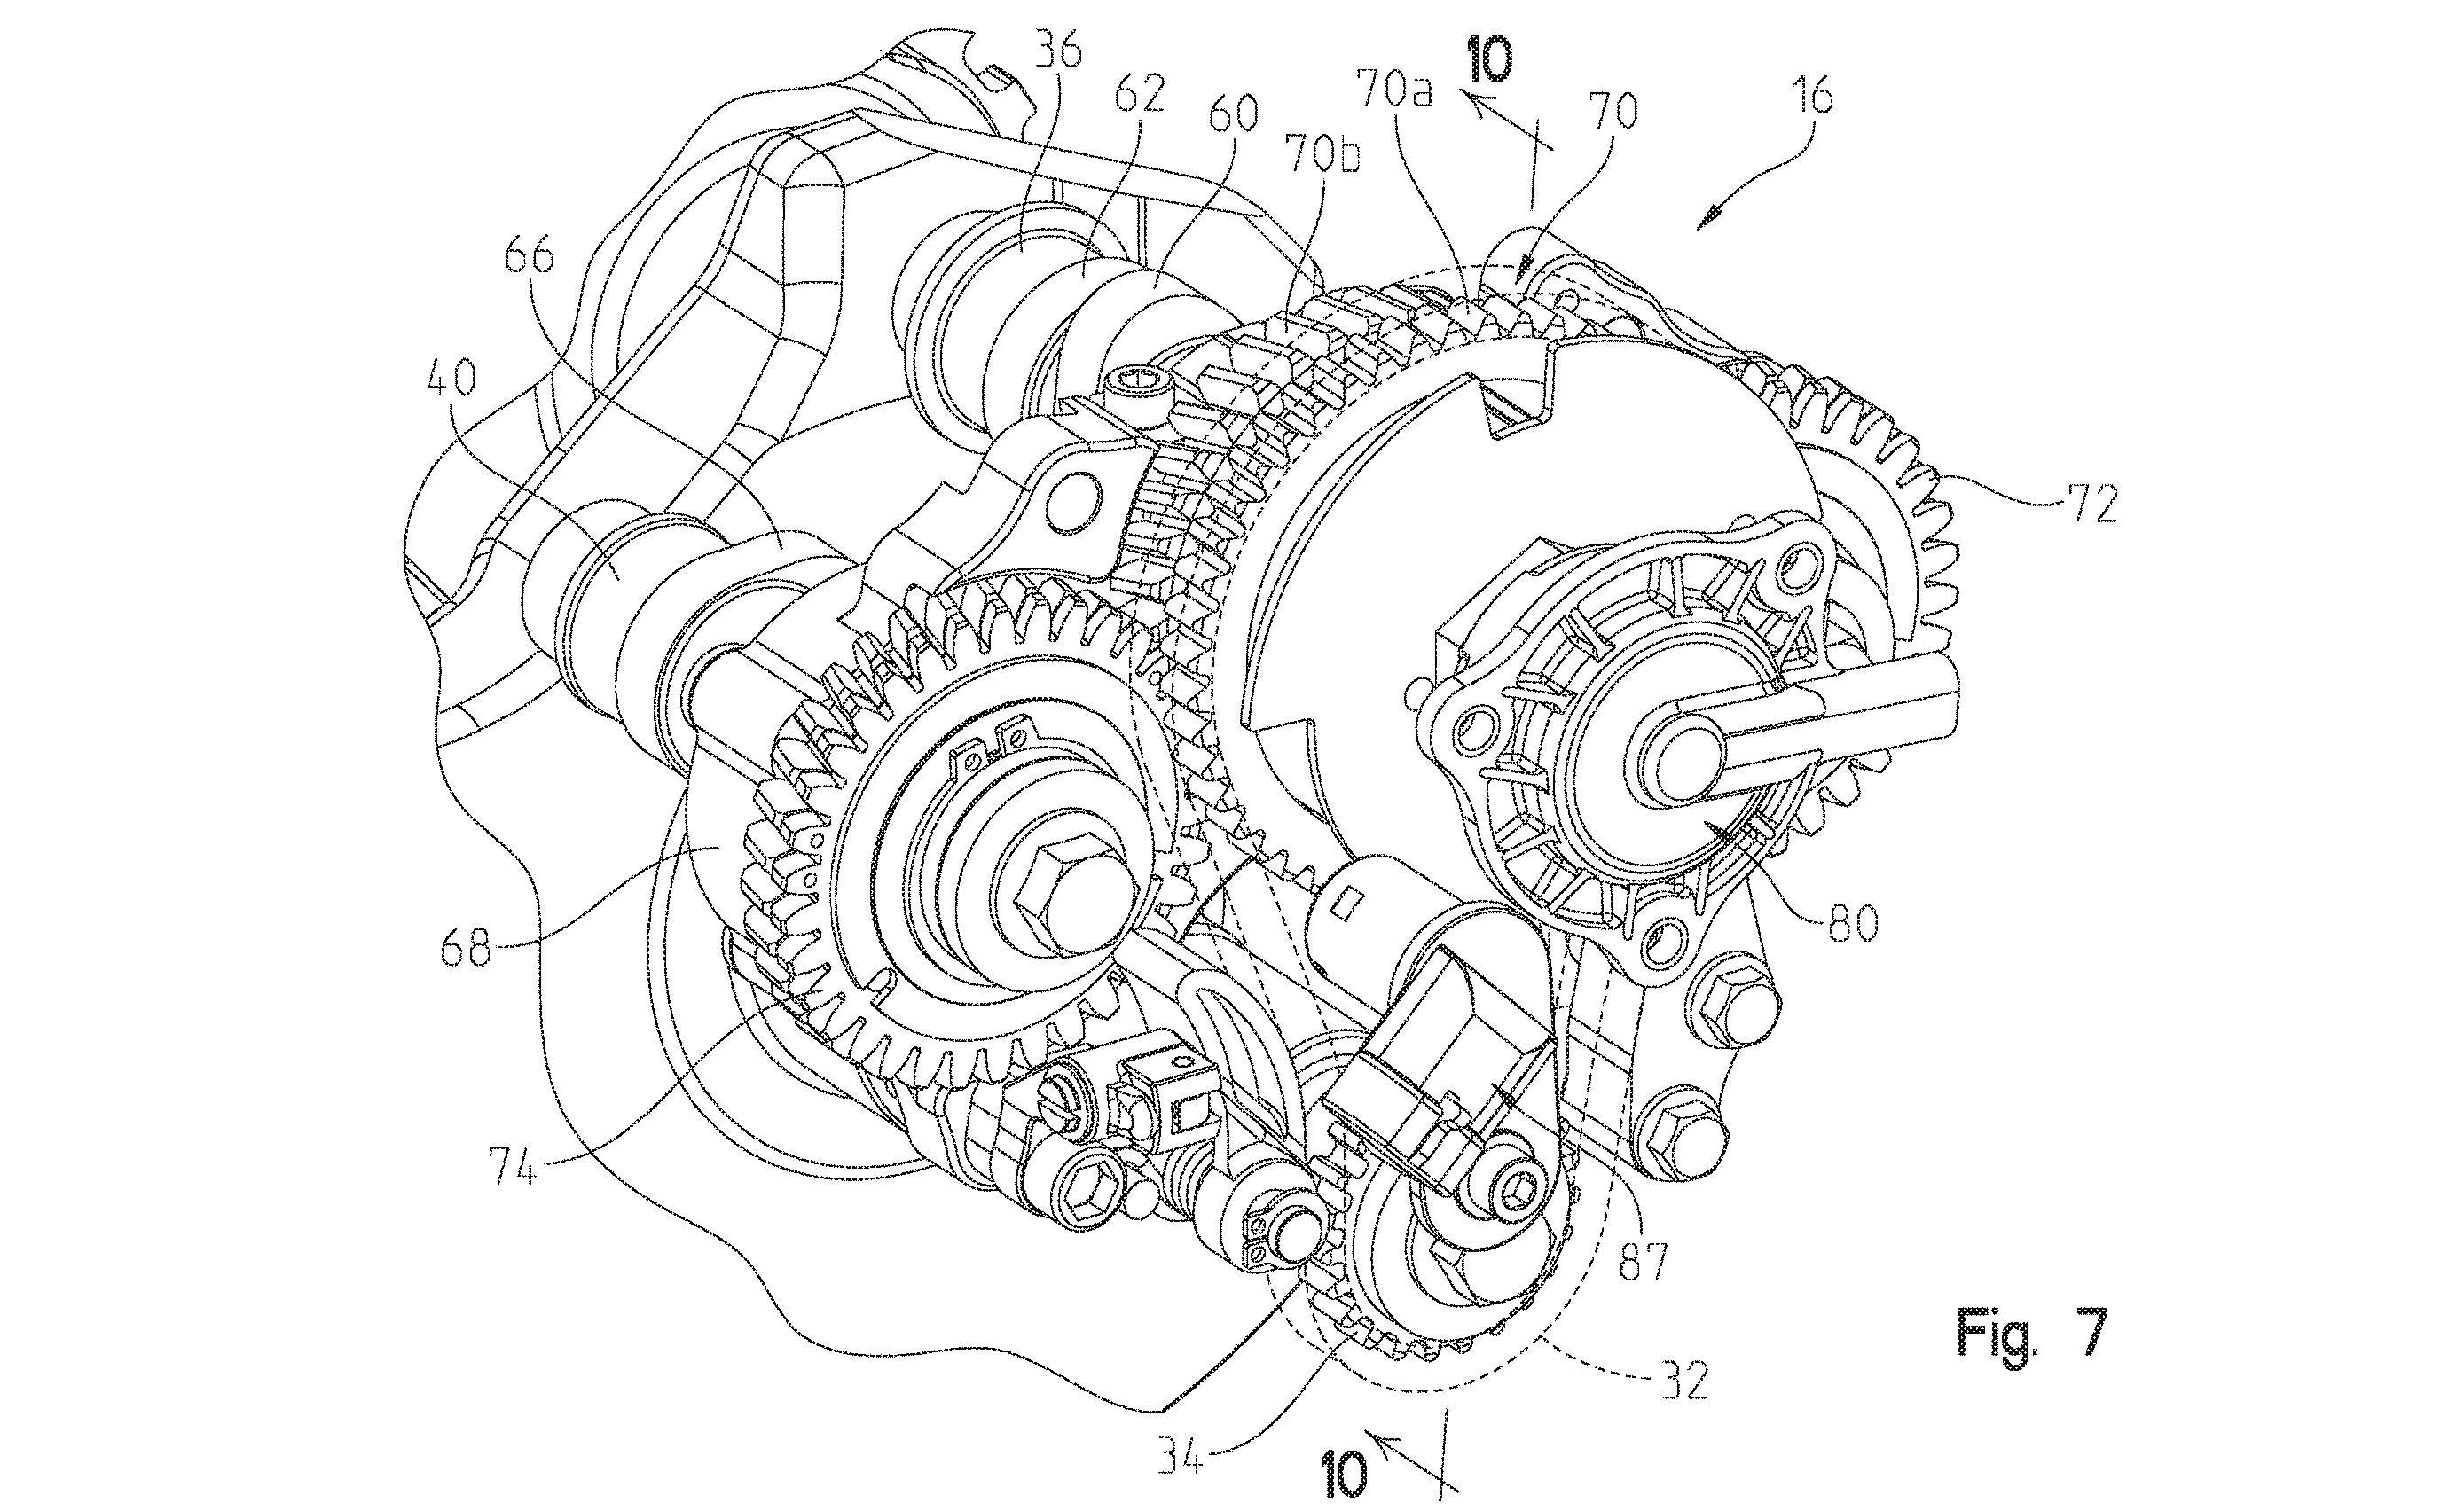 050919-indian-thunder-stroke-vvt-patent-fig-7